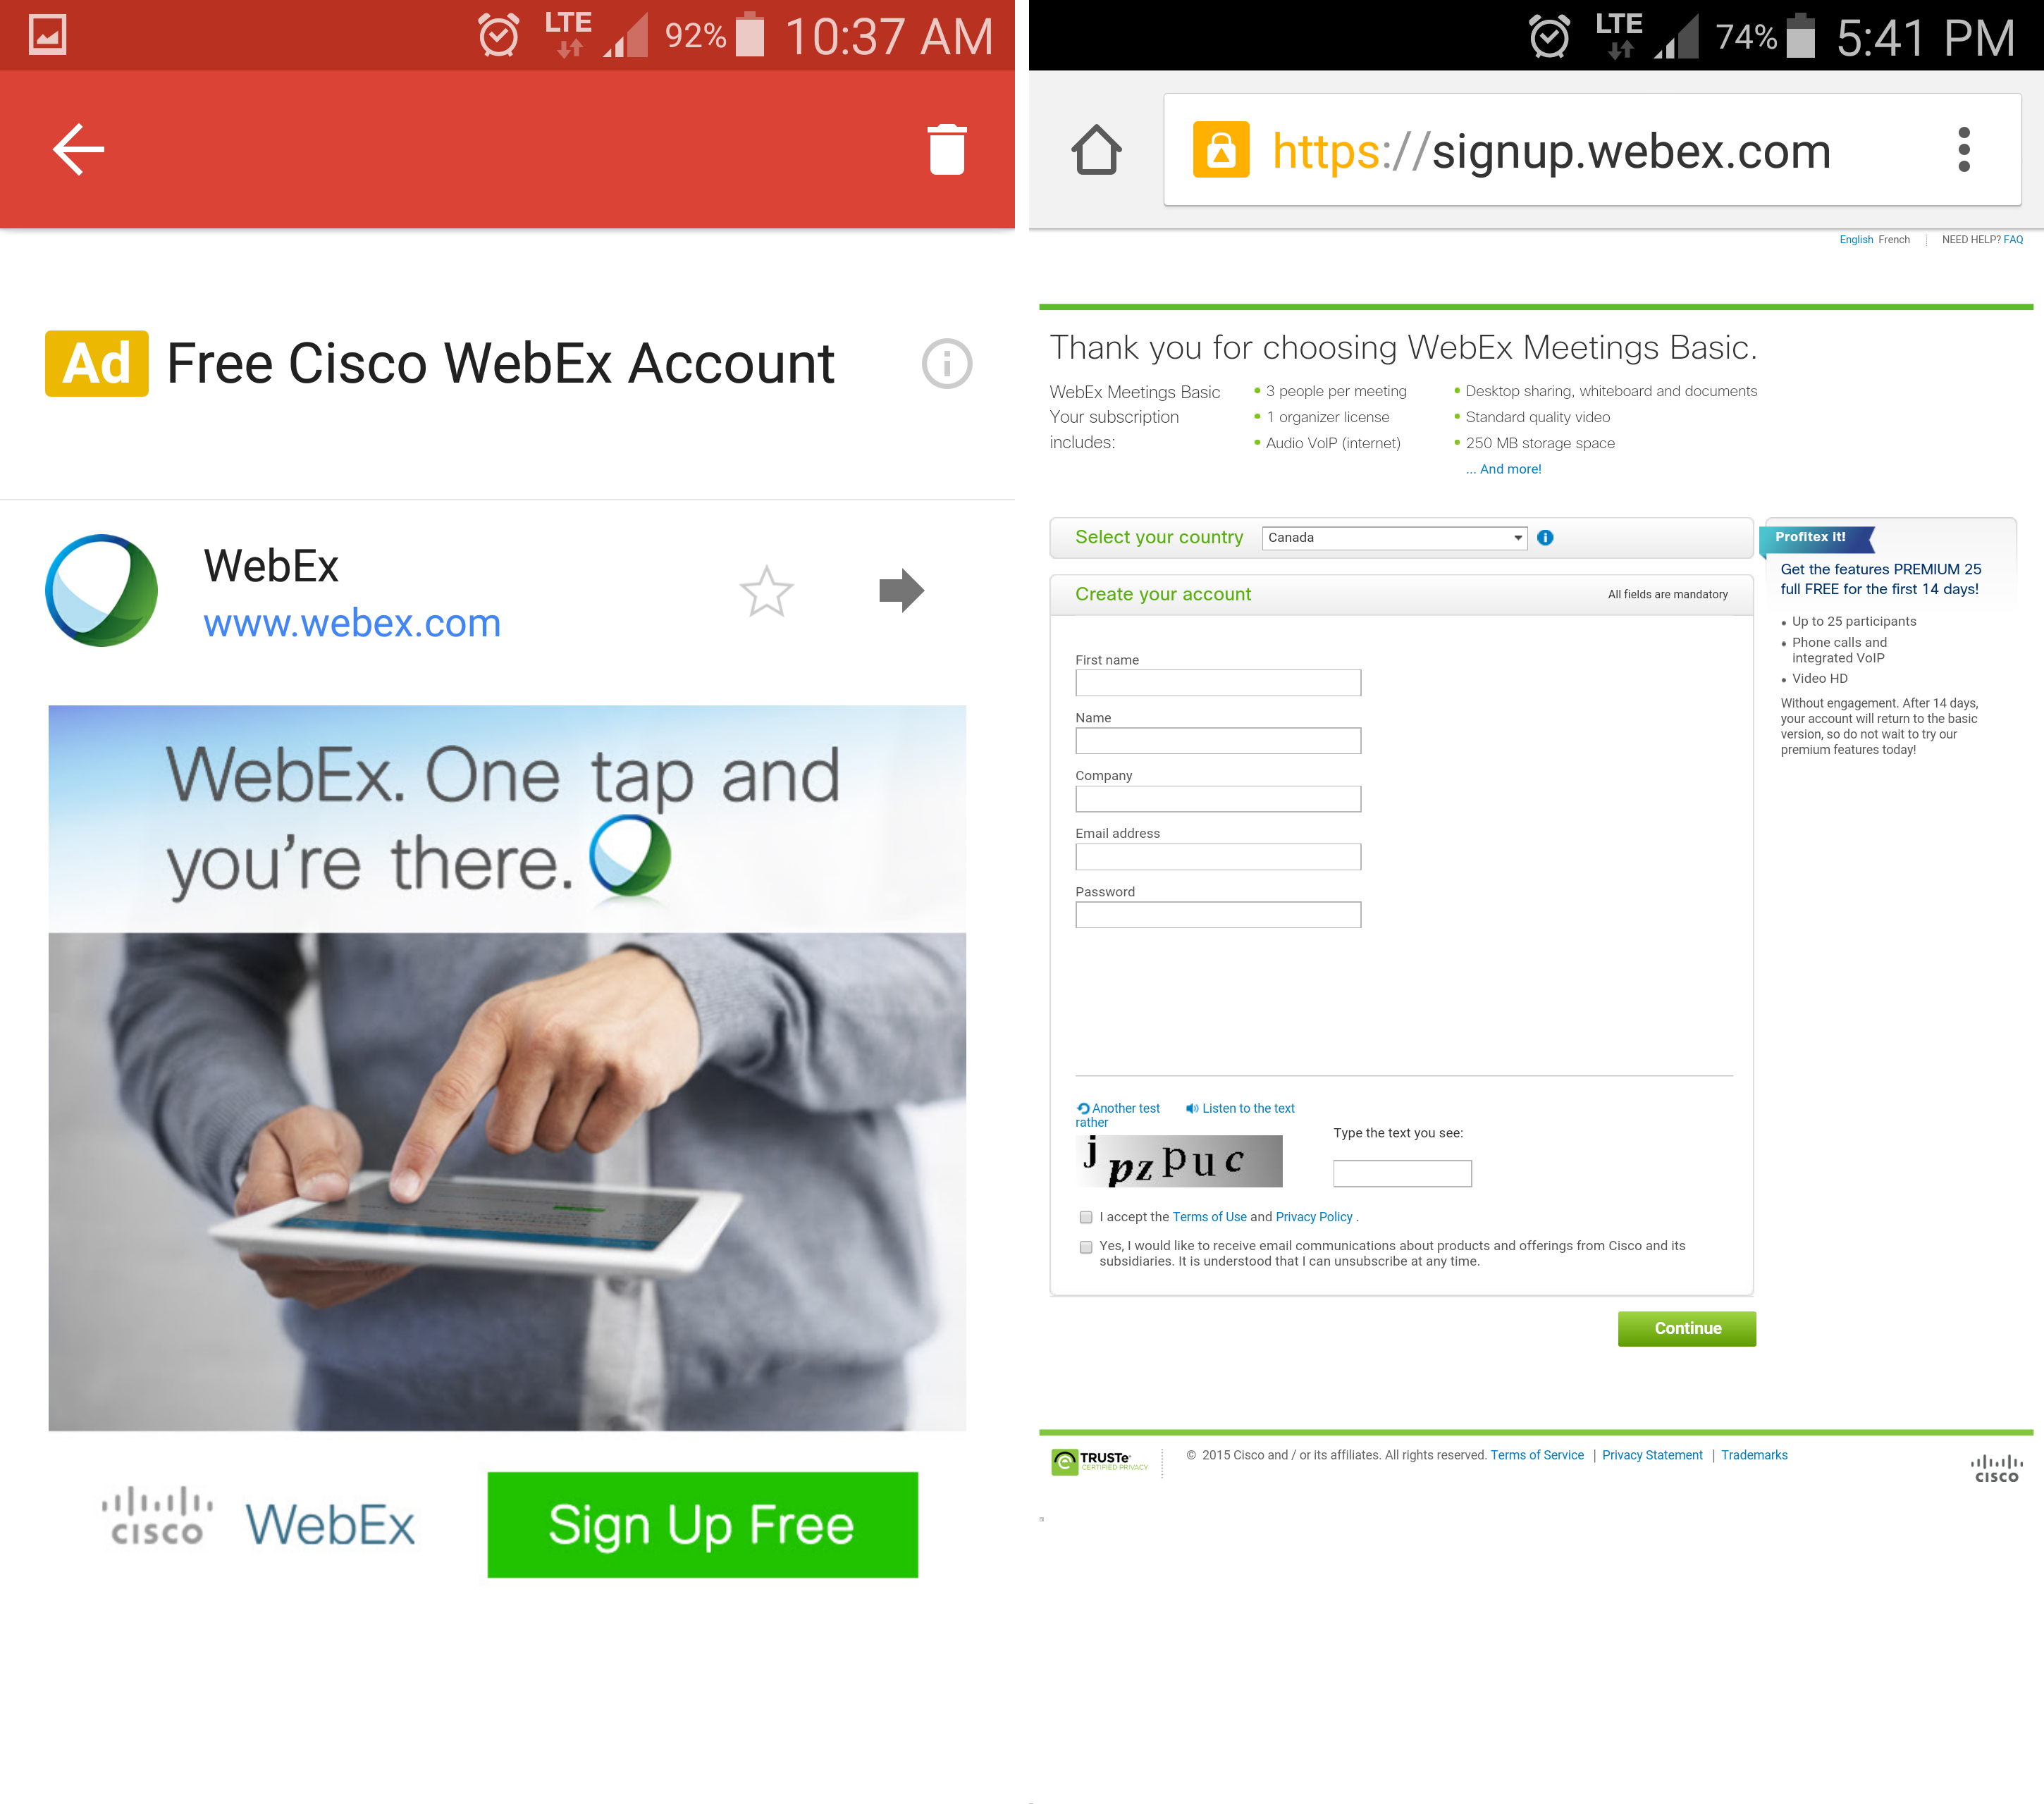 webex_mobile_email_landing_page